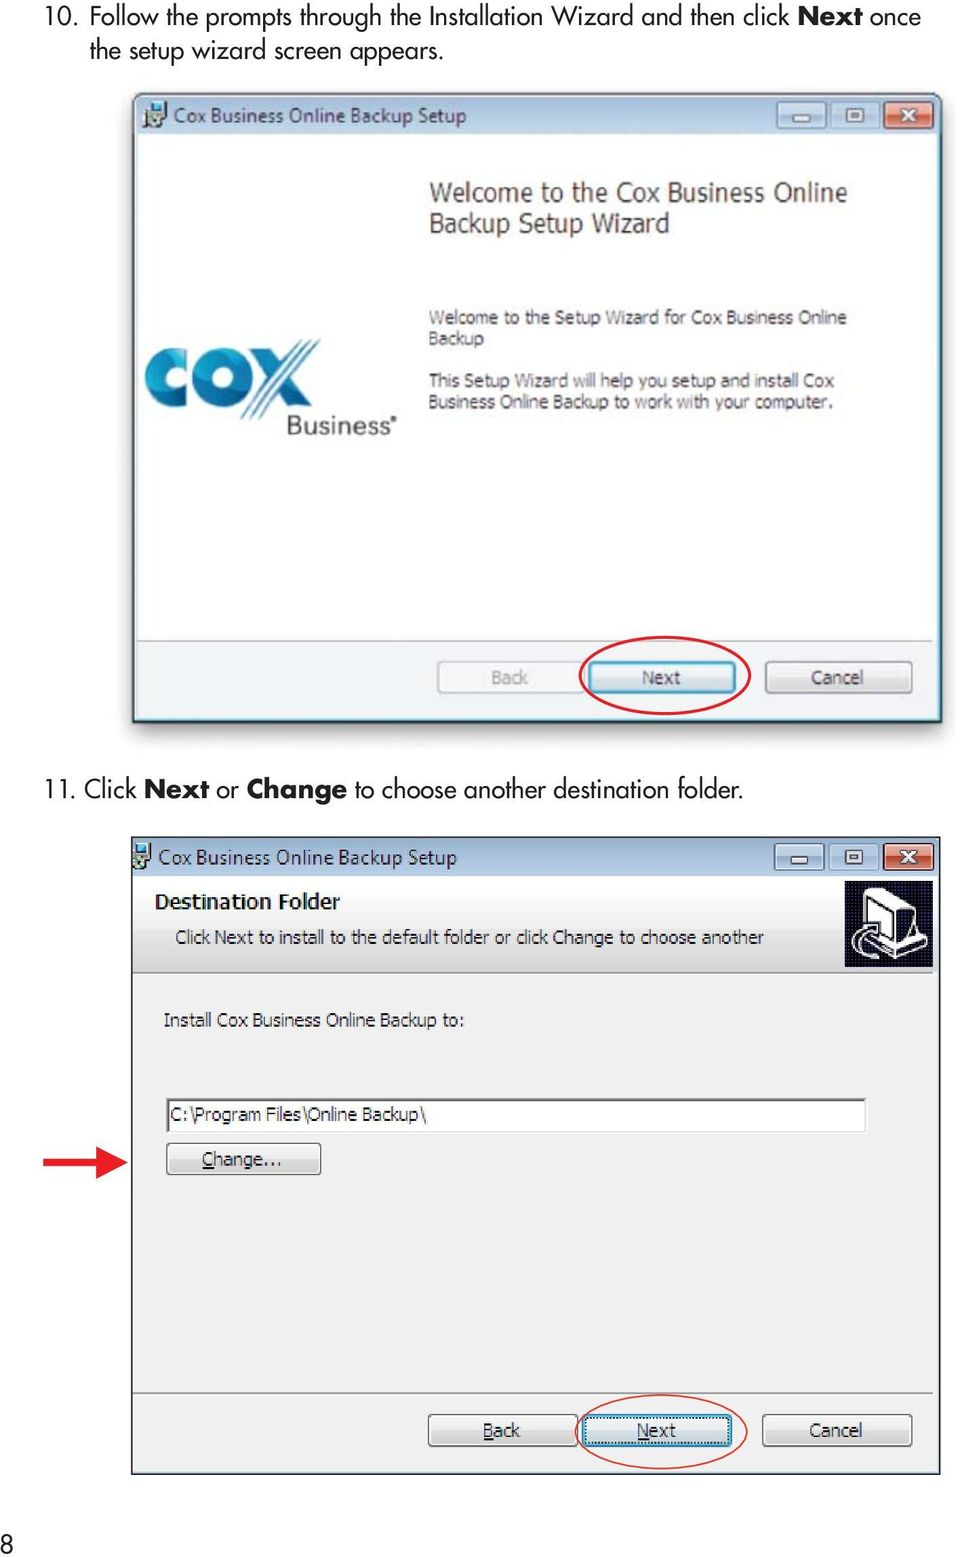 Click Next to install to the default folder or click Change to choose another destination